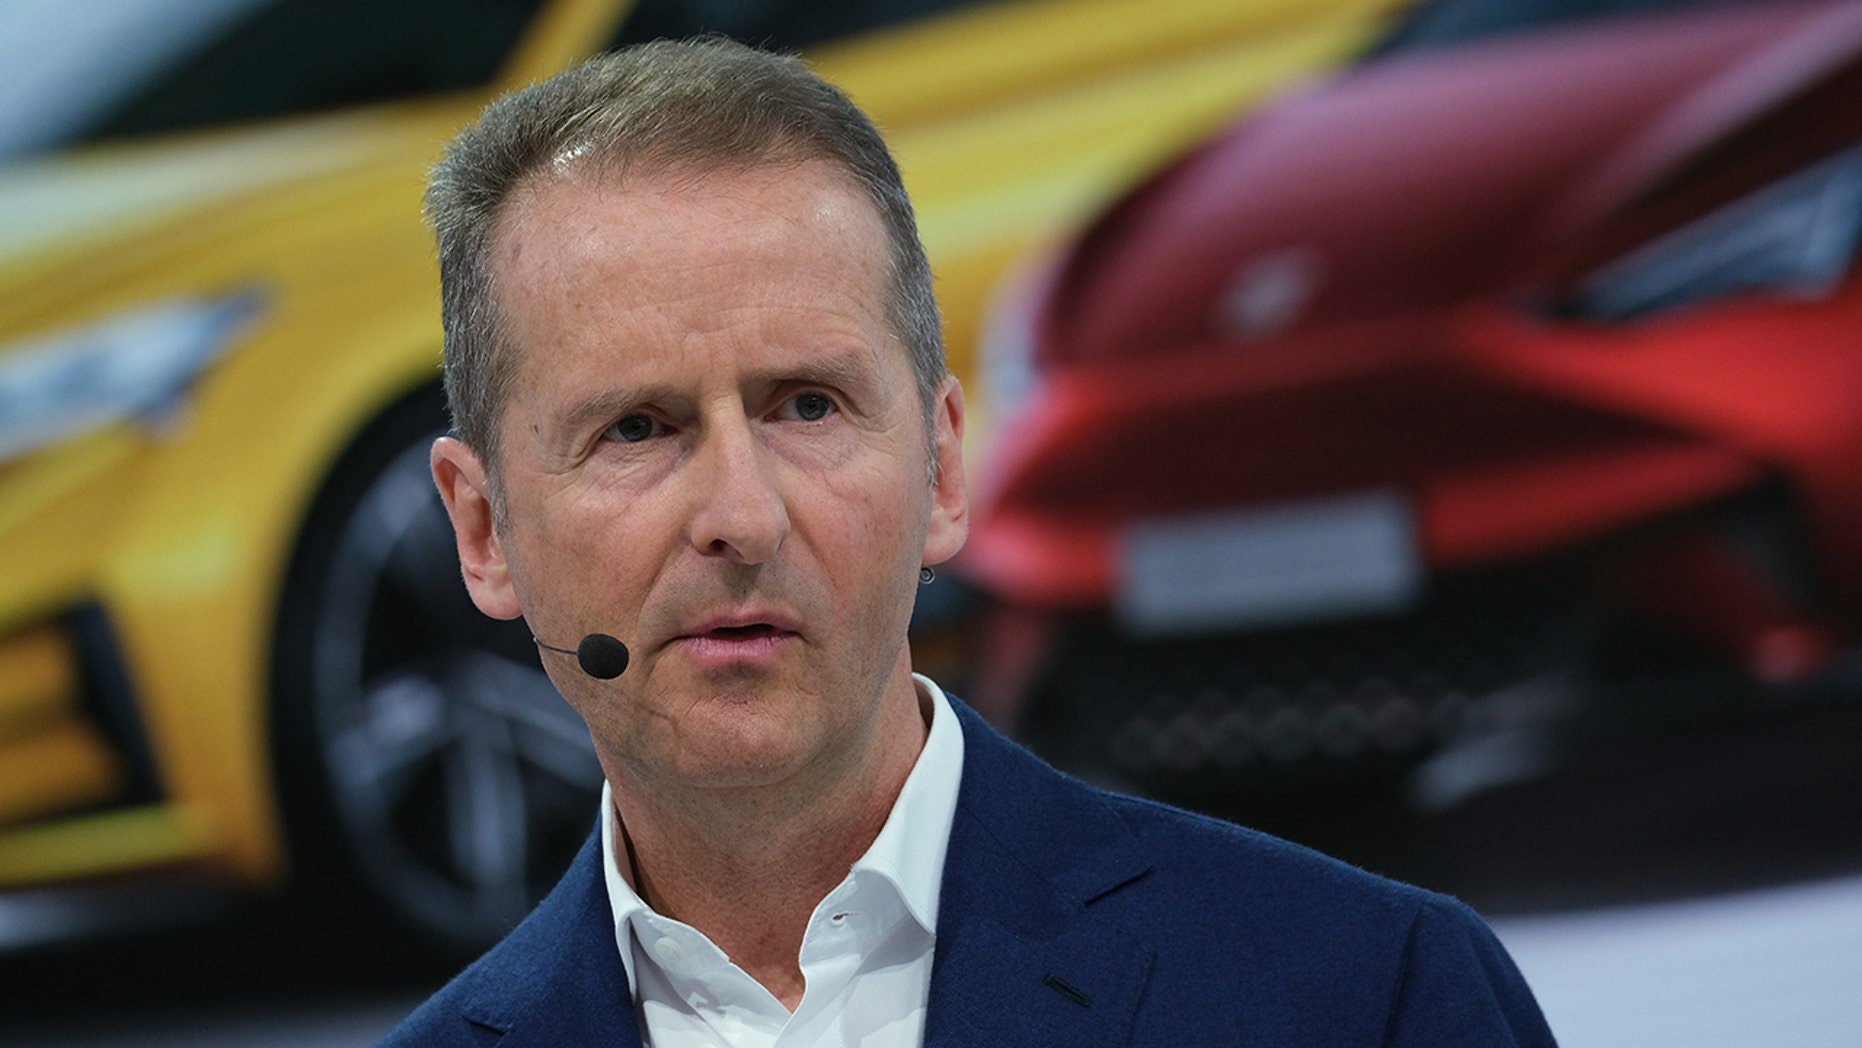 Volkswagen boss apologises for Nazi gaffe after 'arbeit macht frei' pun